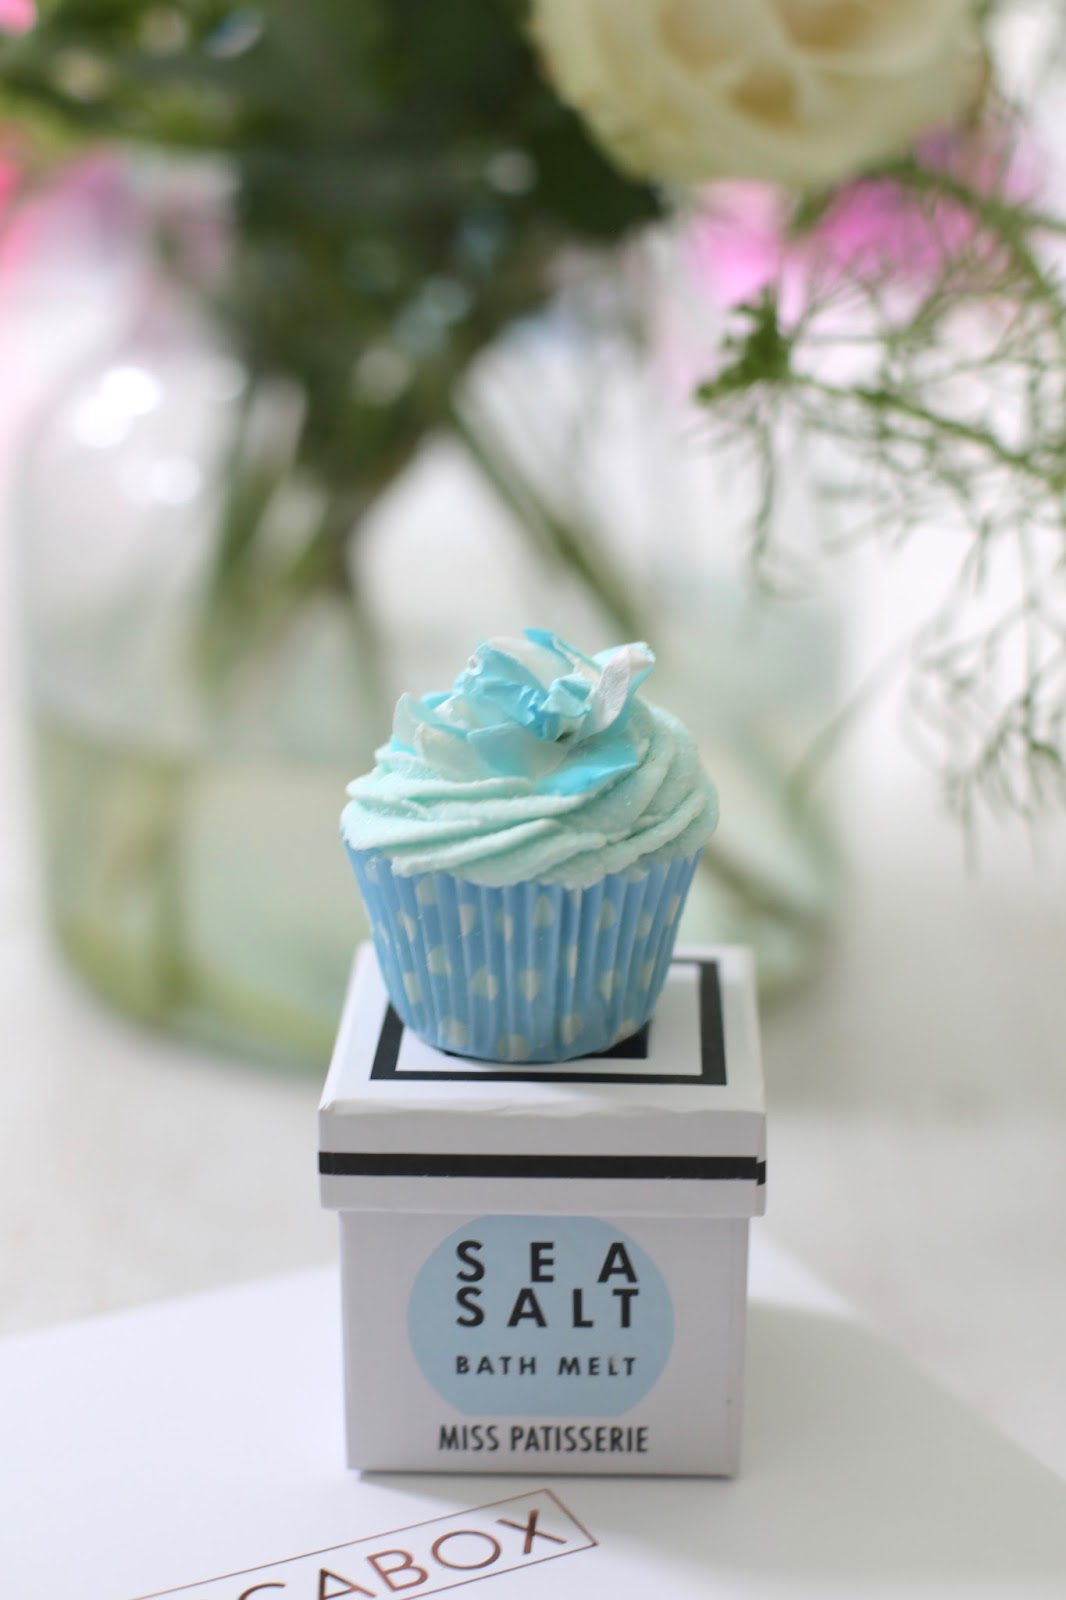 sea salt bath melt miss patisserie